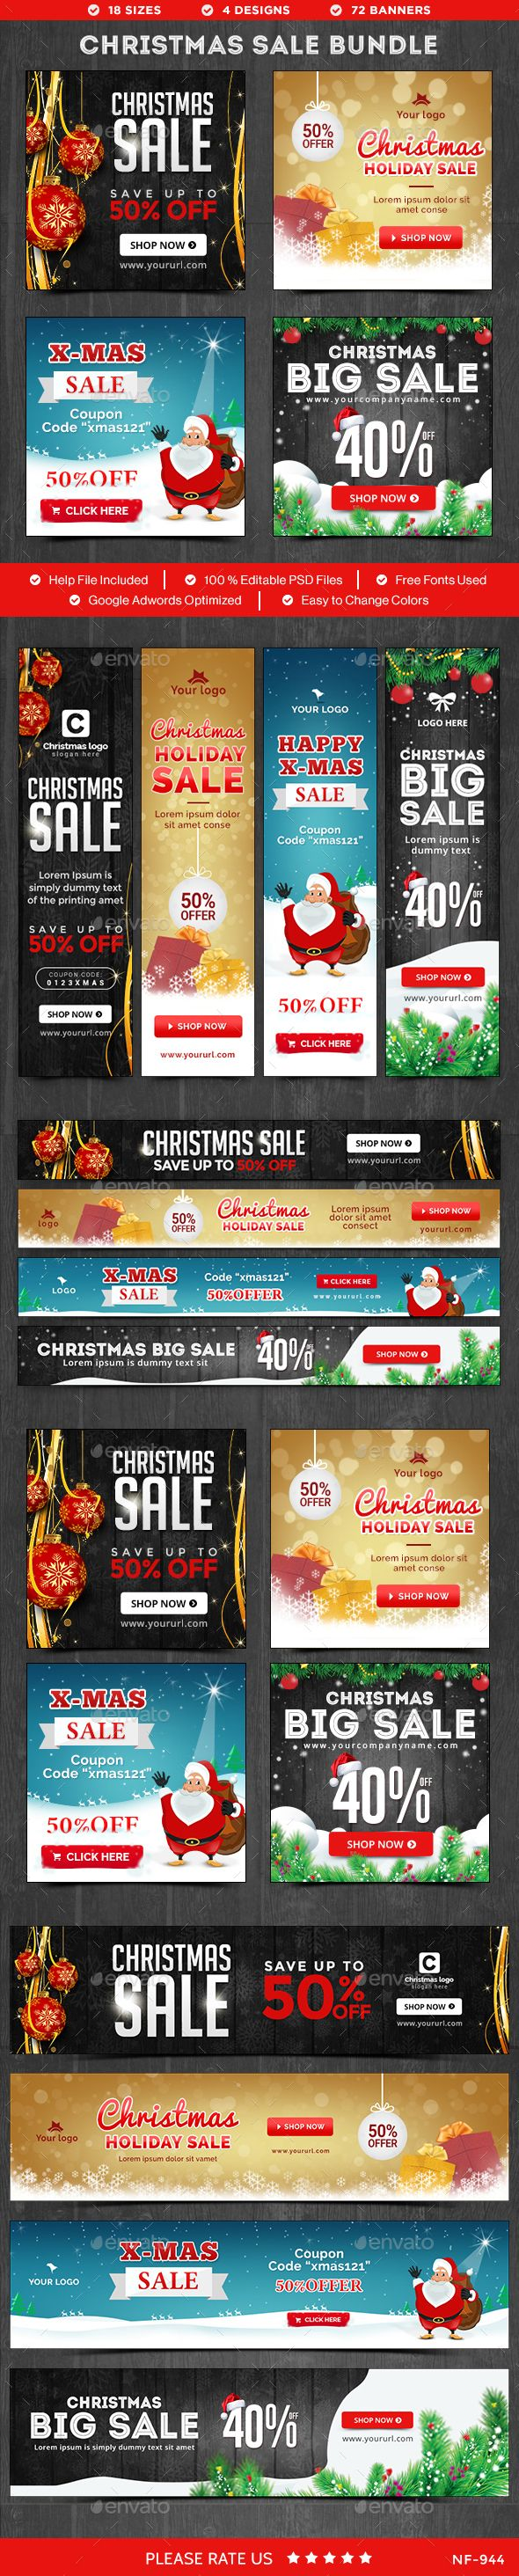 Christmas Sale Banners Bundle - 4 Sets - Images Included